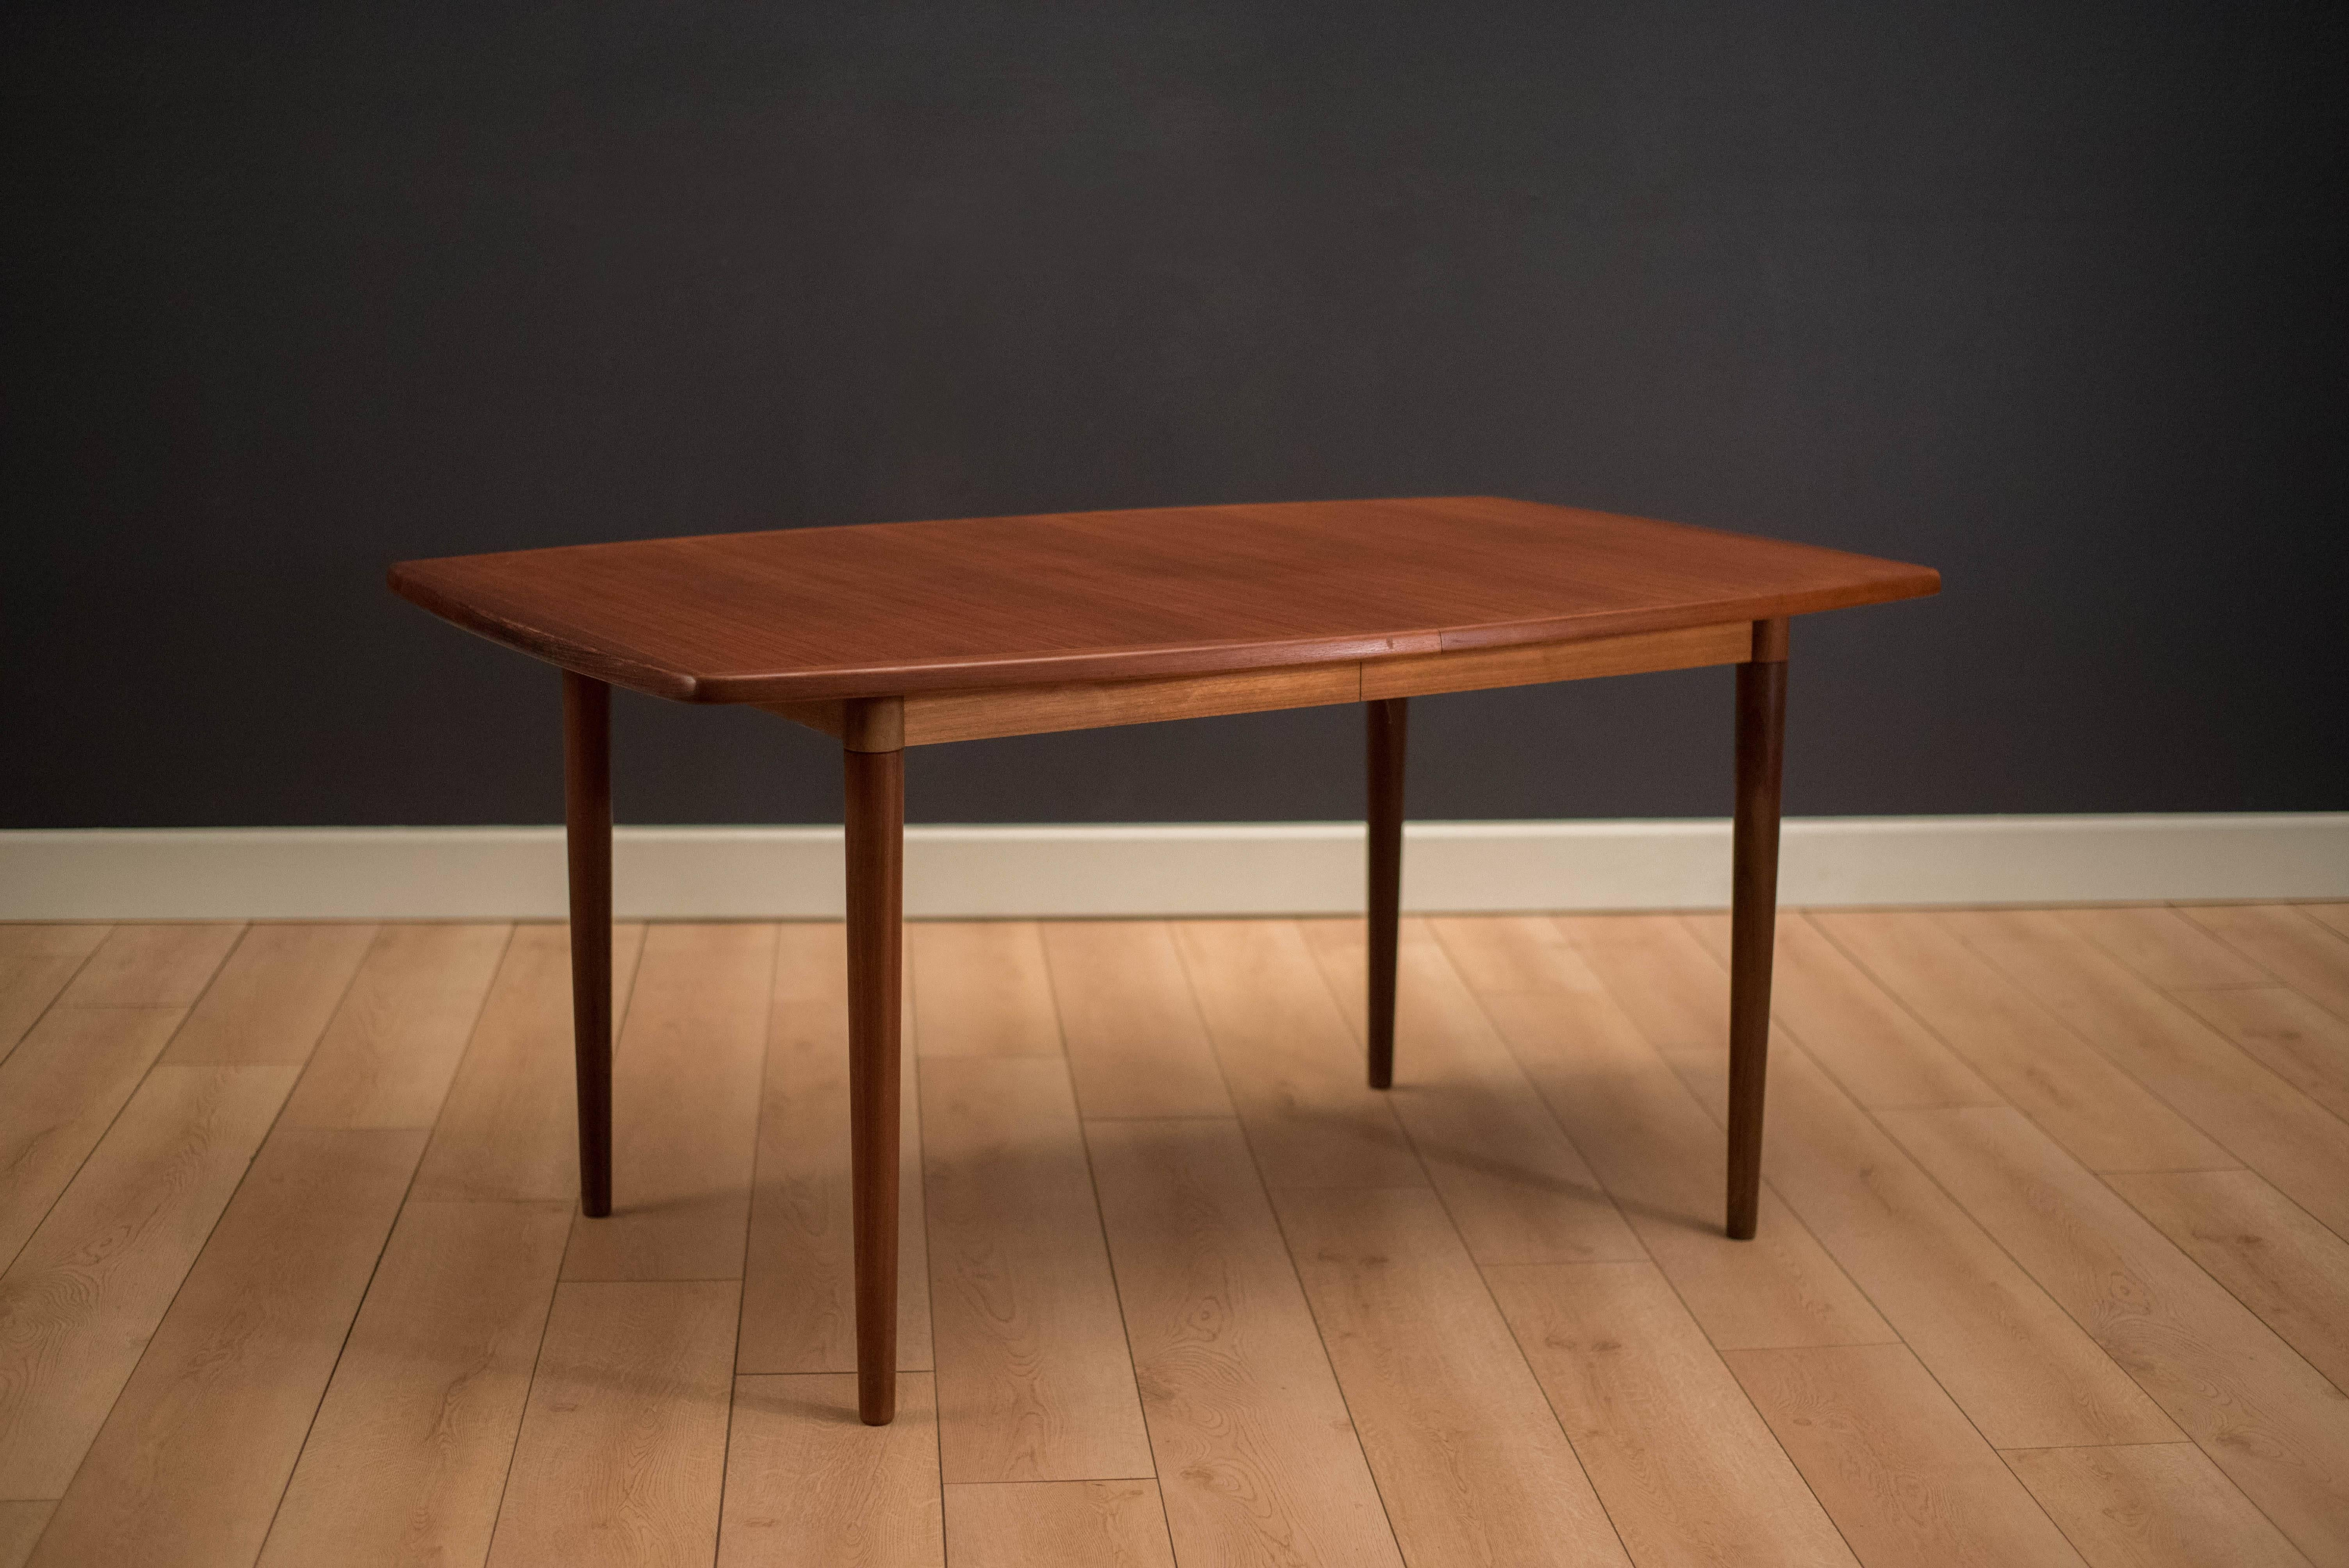 Exceptionnel Mid Century Modern Expandable Dining Table By Gustav Bahus, Norway. This  Piece Features